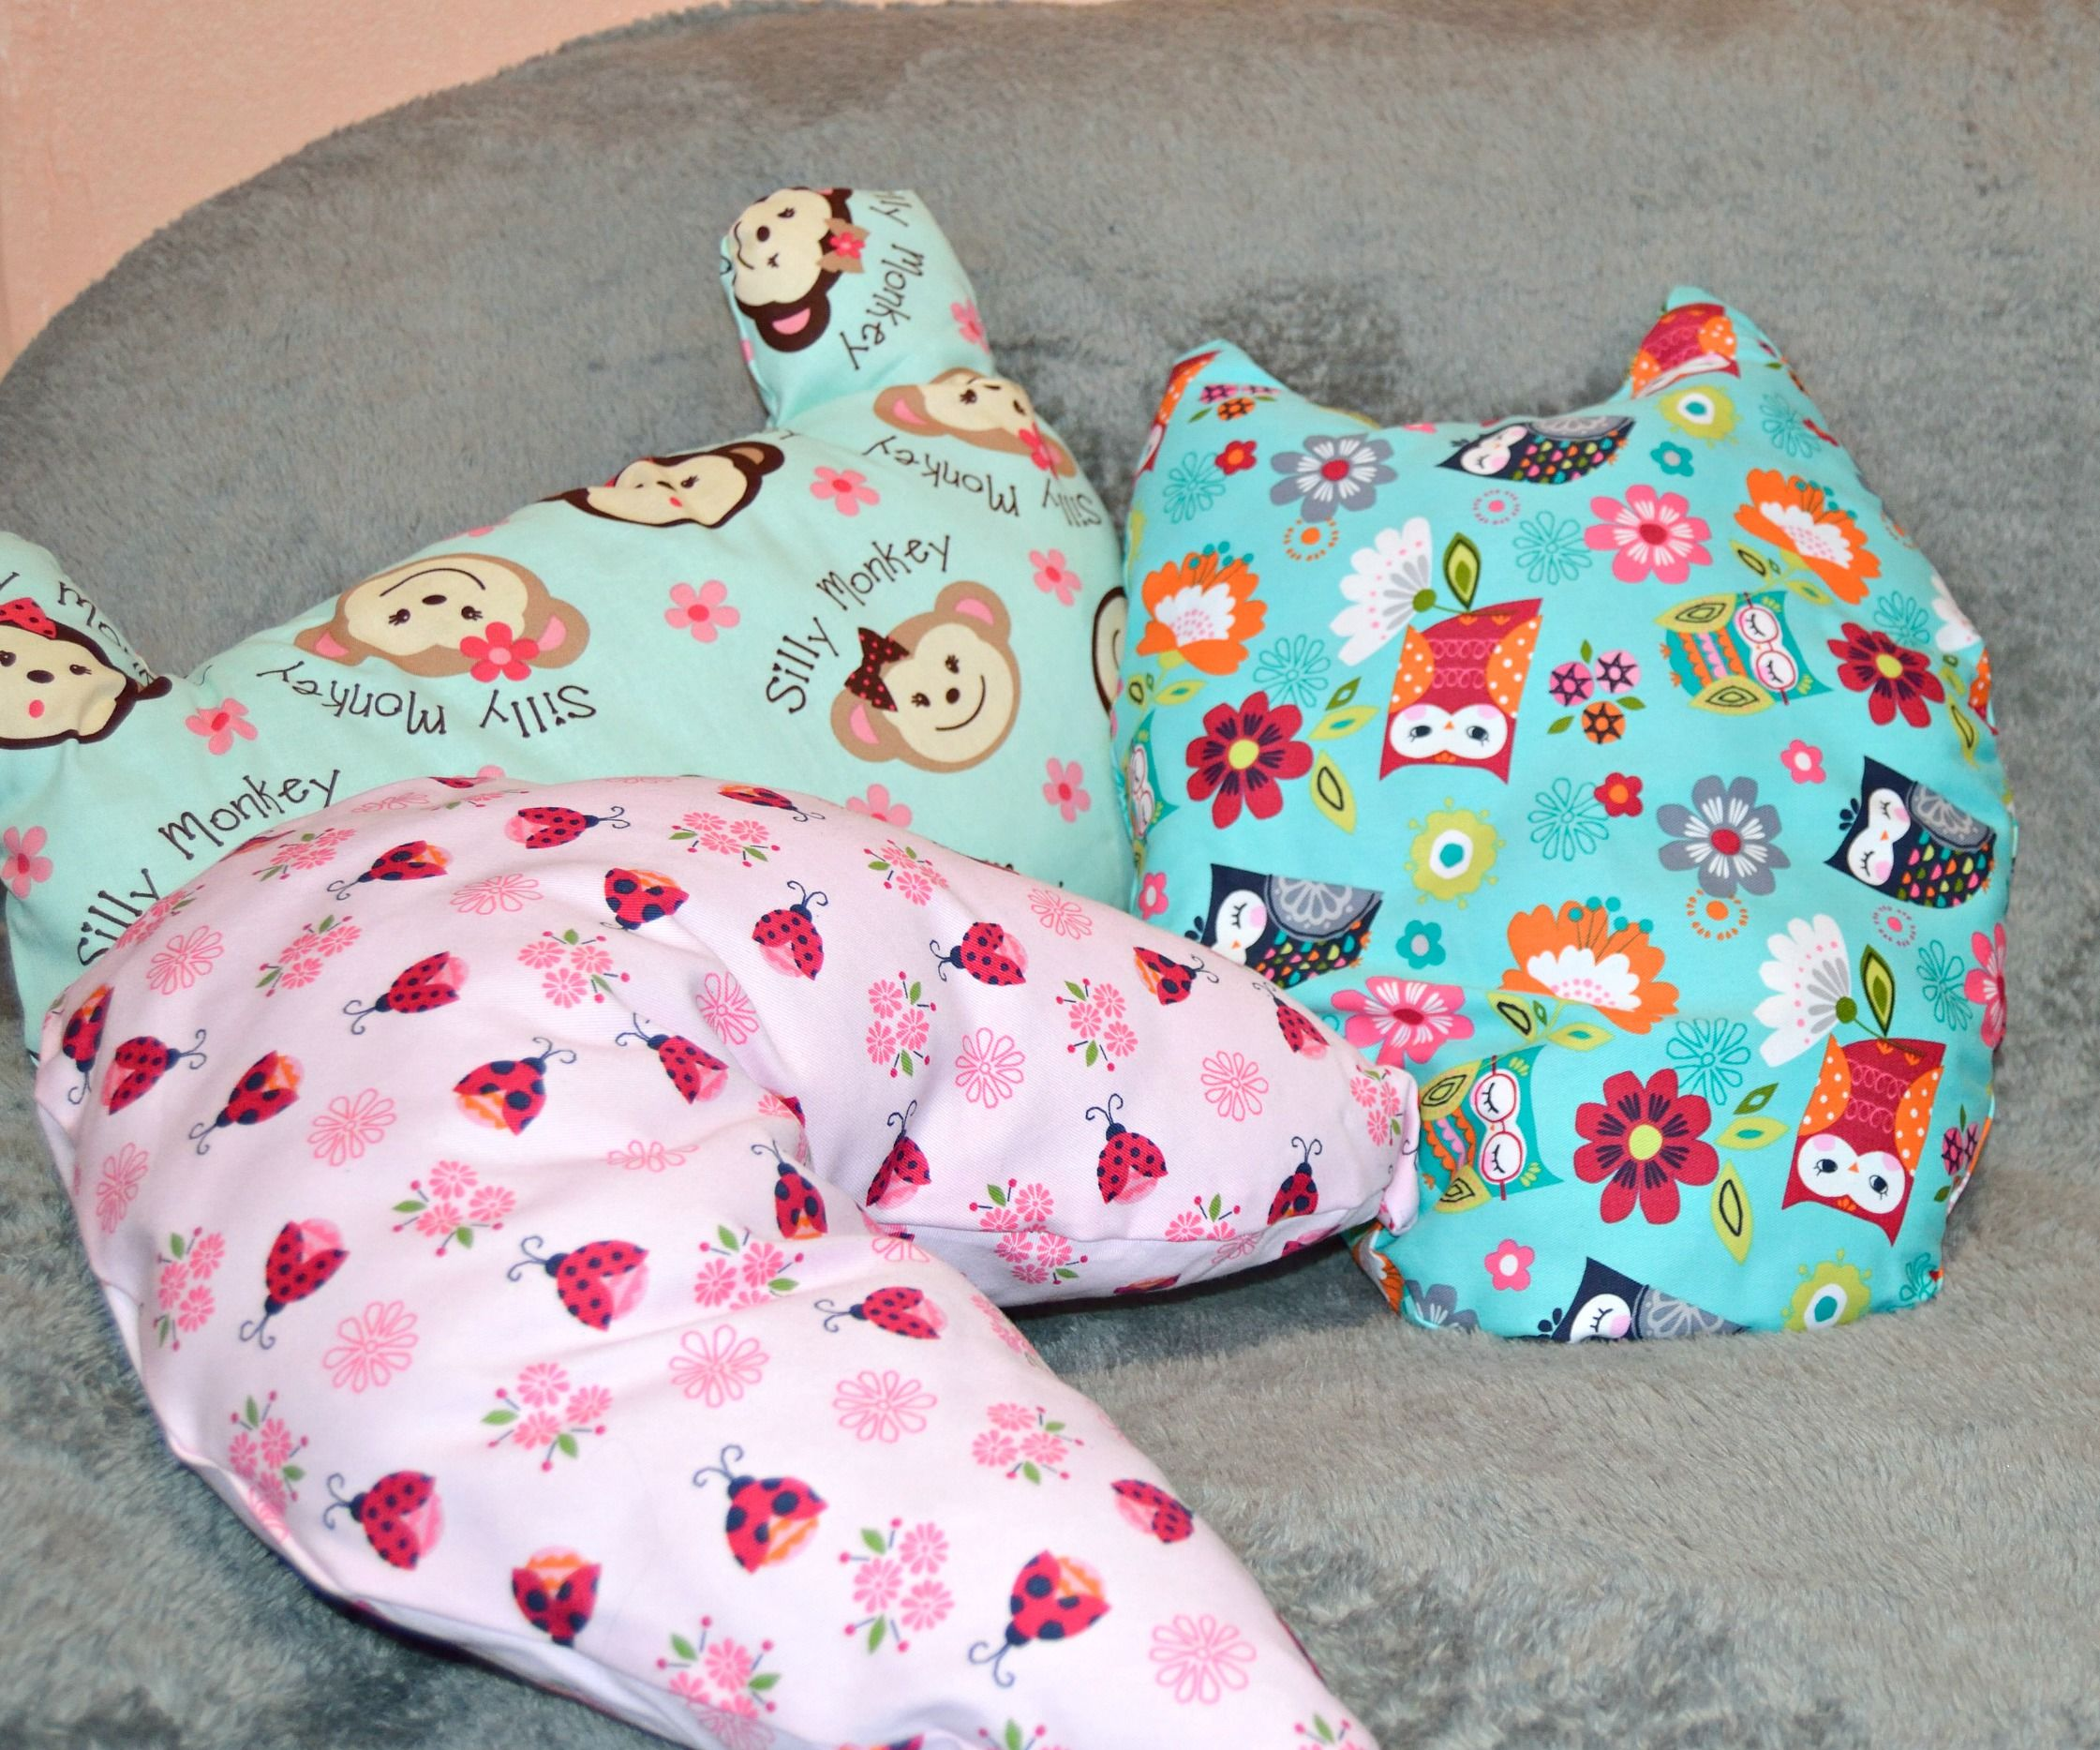 DIY No Sew Toy-shaped pillows